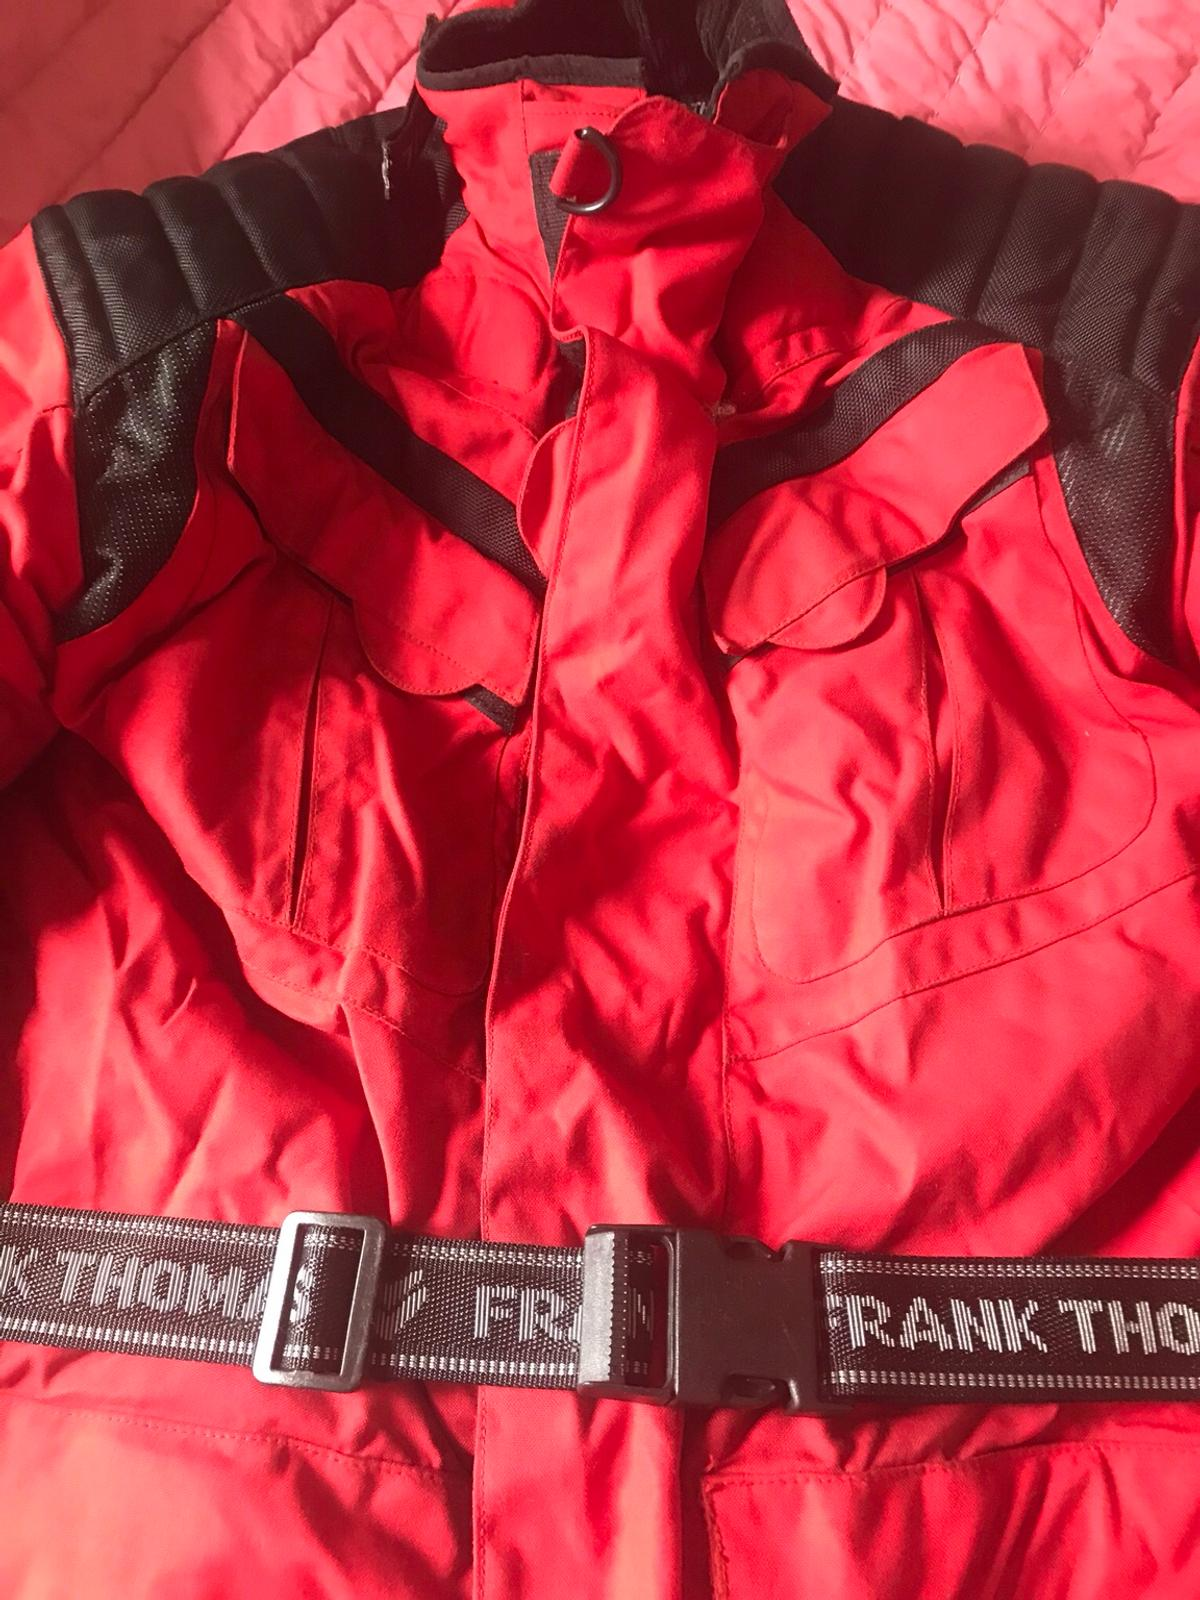 Frank Thomas motorcycle jacket with removable lining, loads of pockets, appropriate armour. Tighten straps to waste, neck and wrists. High collar very warm!